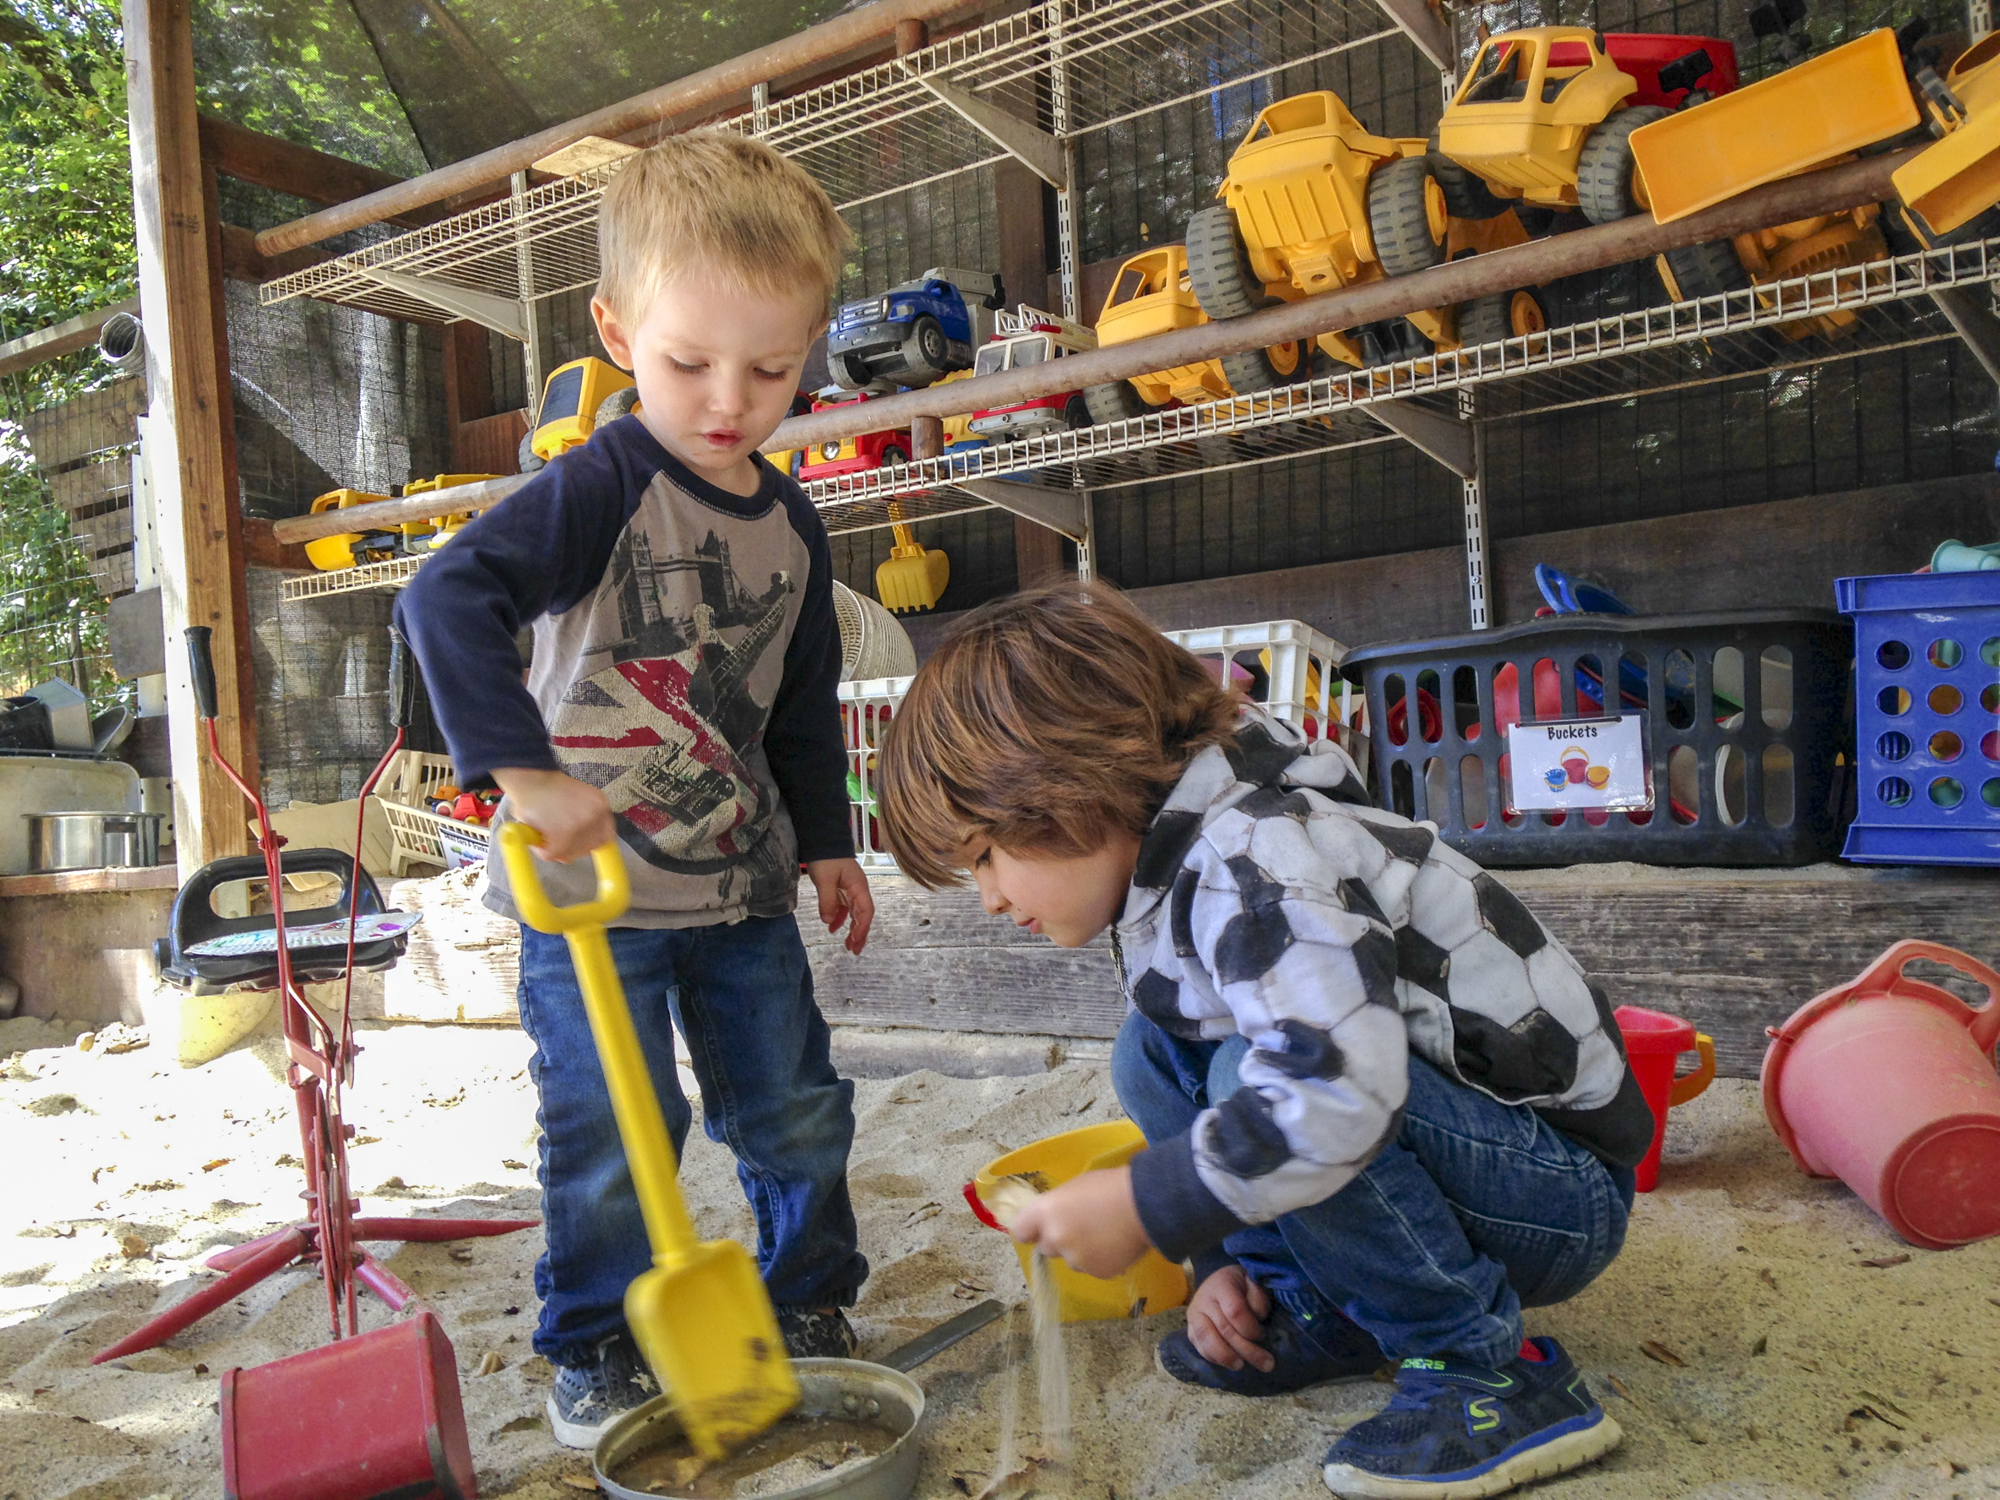 THE MAIN YARD - With lots of room to run and play and new hands-on activities set up daily, children are in the main yard rain or shine.Here you'll find seemingly limitless opportunities for play, including a climbing wall, water table, and a giant covered sandbox.